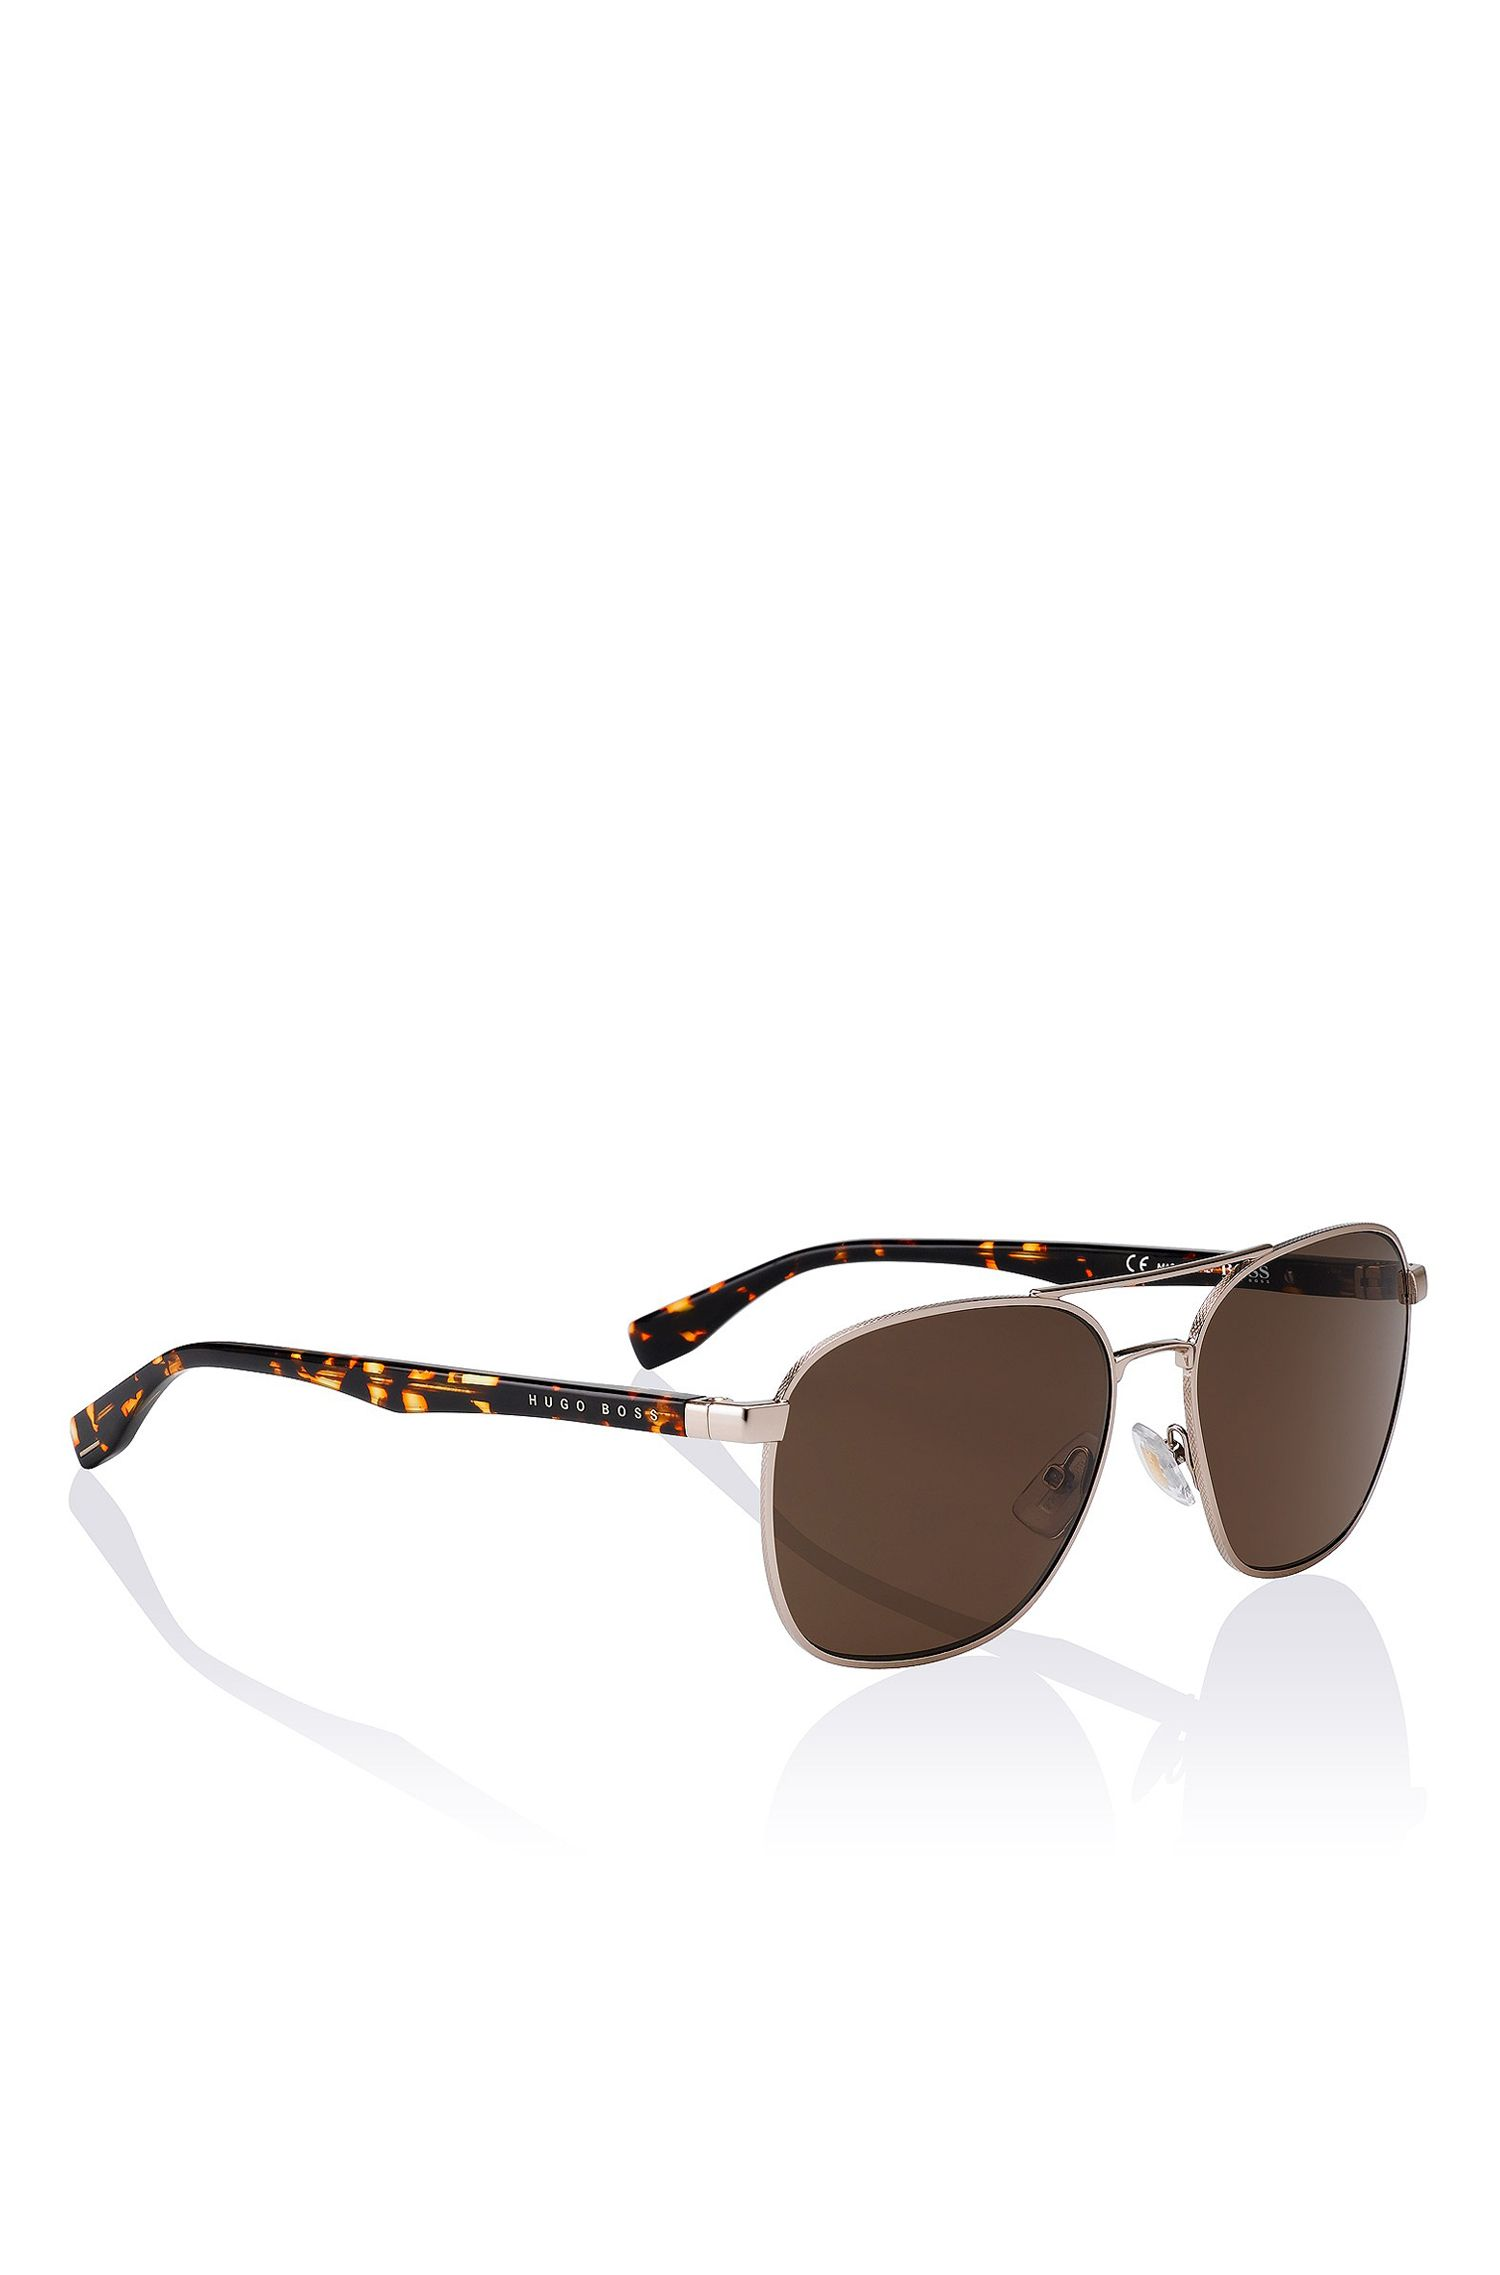 Brown Lens Navigator Sunglasses | BOSS 0701S